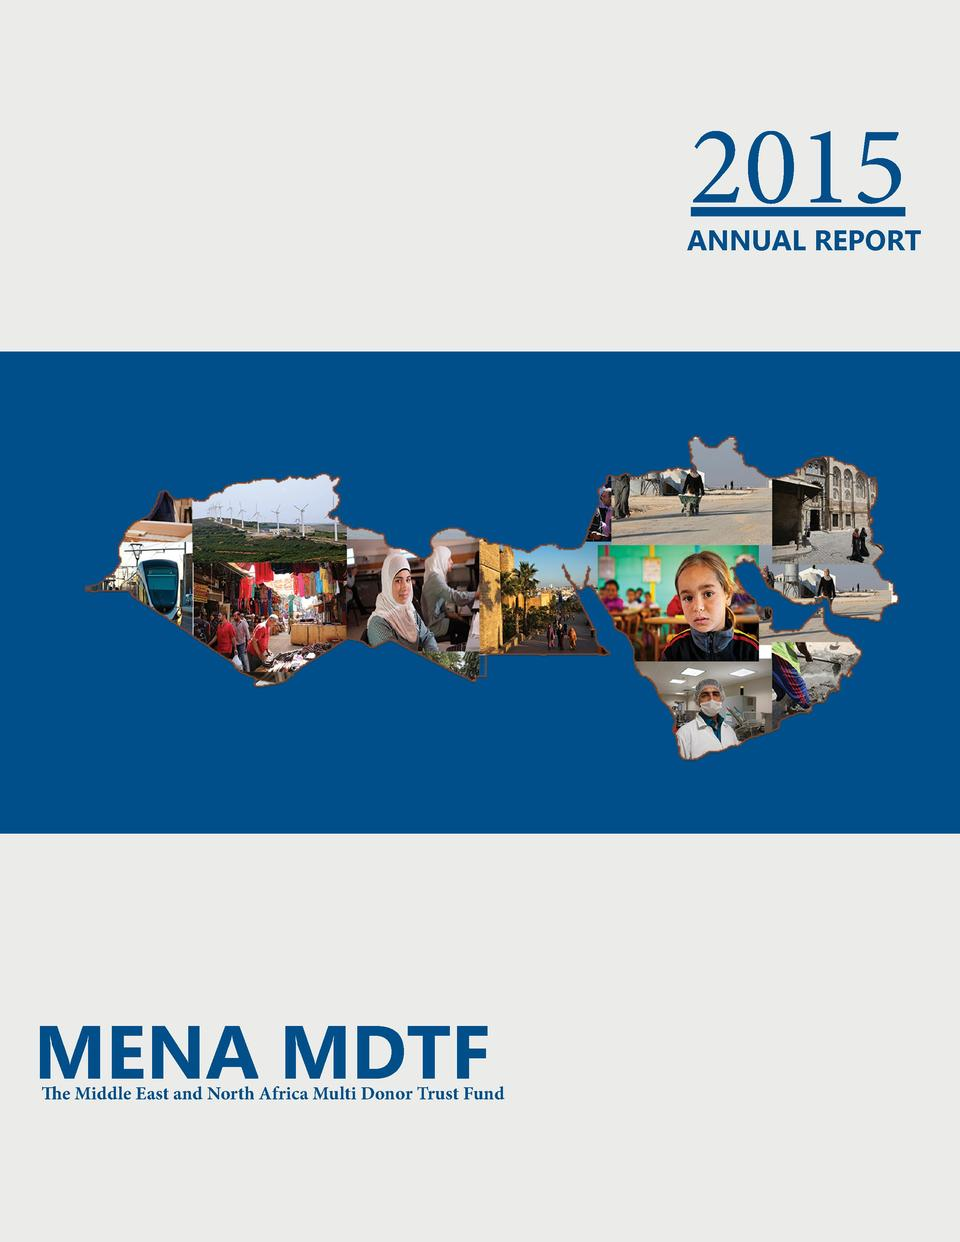 2015  Annual Report  MENA MDTF  The Middle East and North Africa Multi Donor Trust Fund